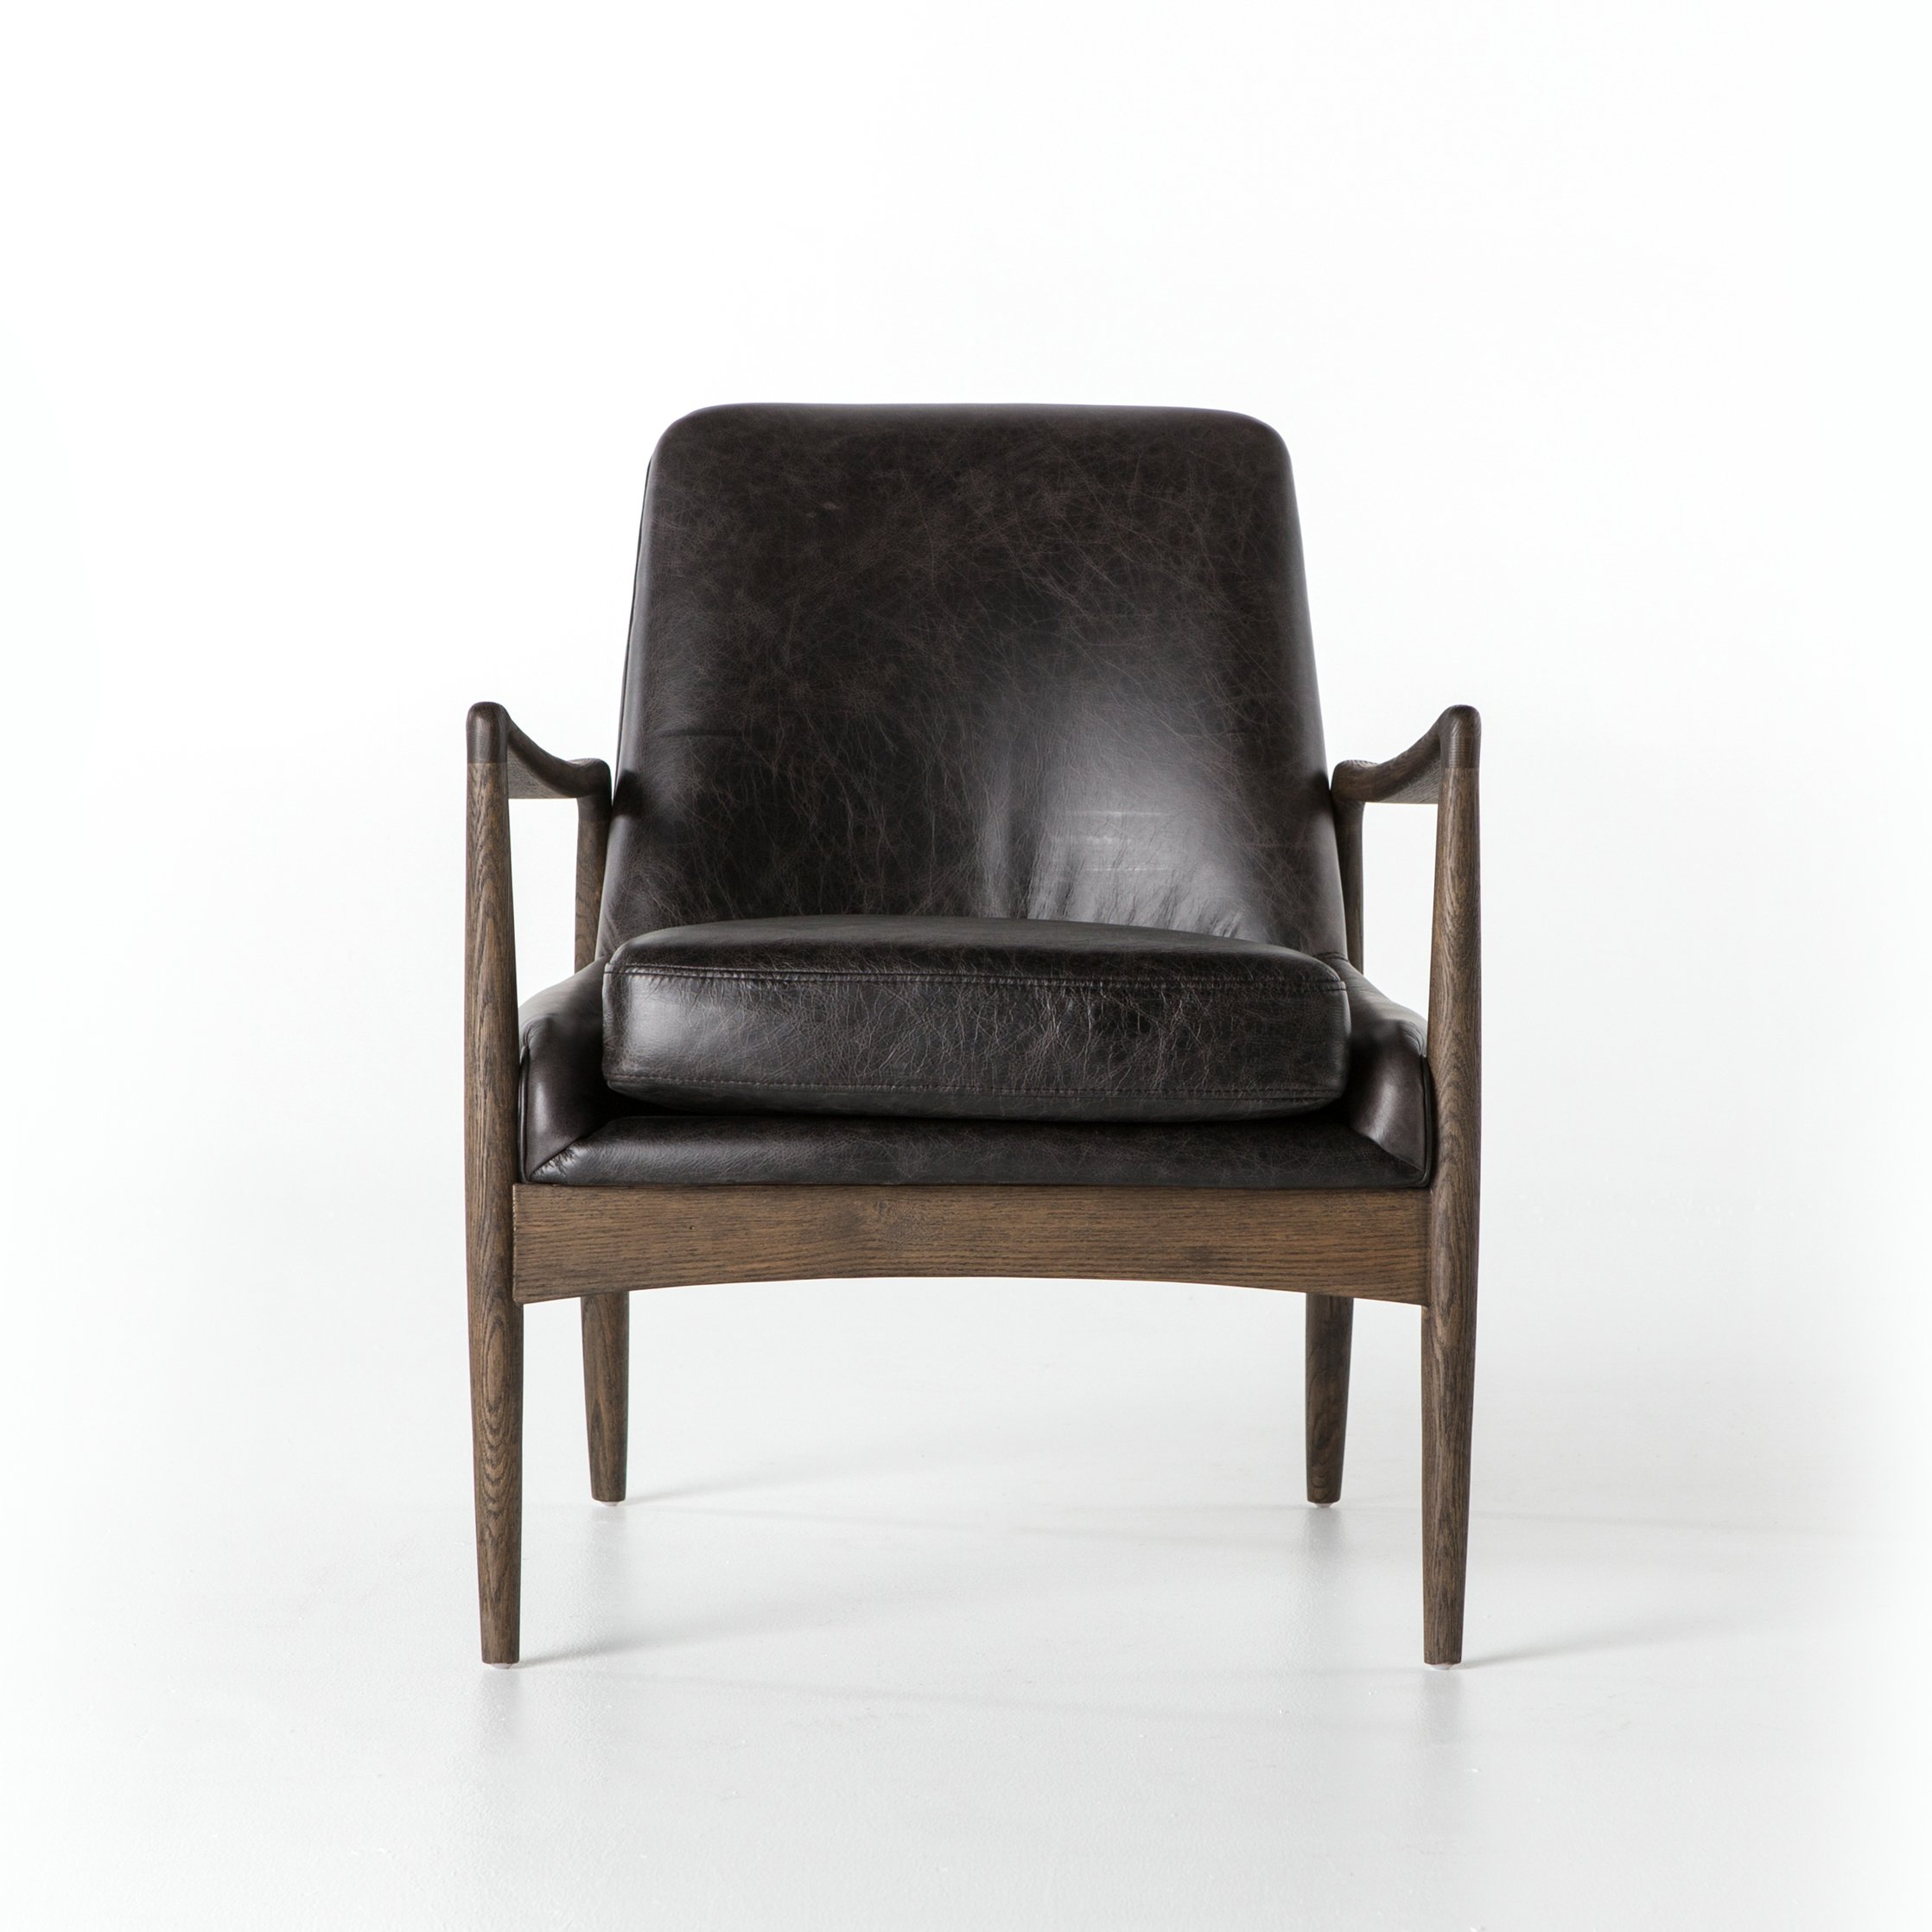 Aidan Leather Chair In Durango Smoke Designbd Studio | Smoking With Aidan Ii Sofa Chairs (View 13 of 25)